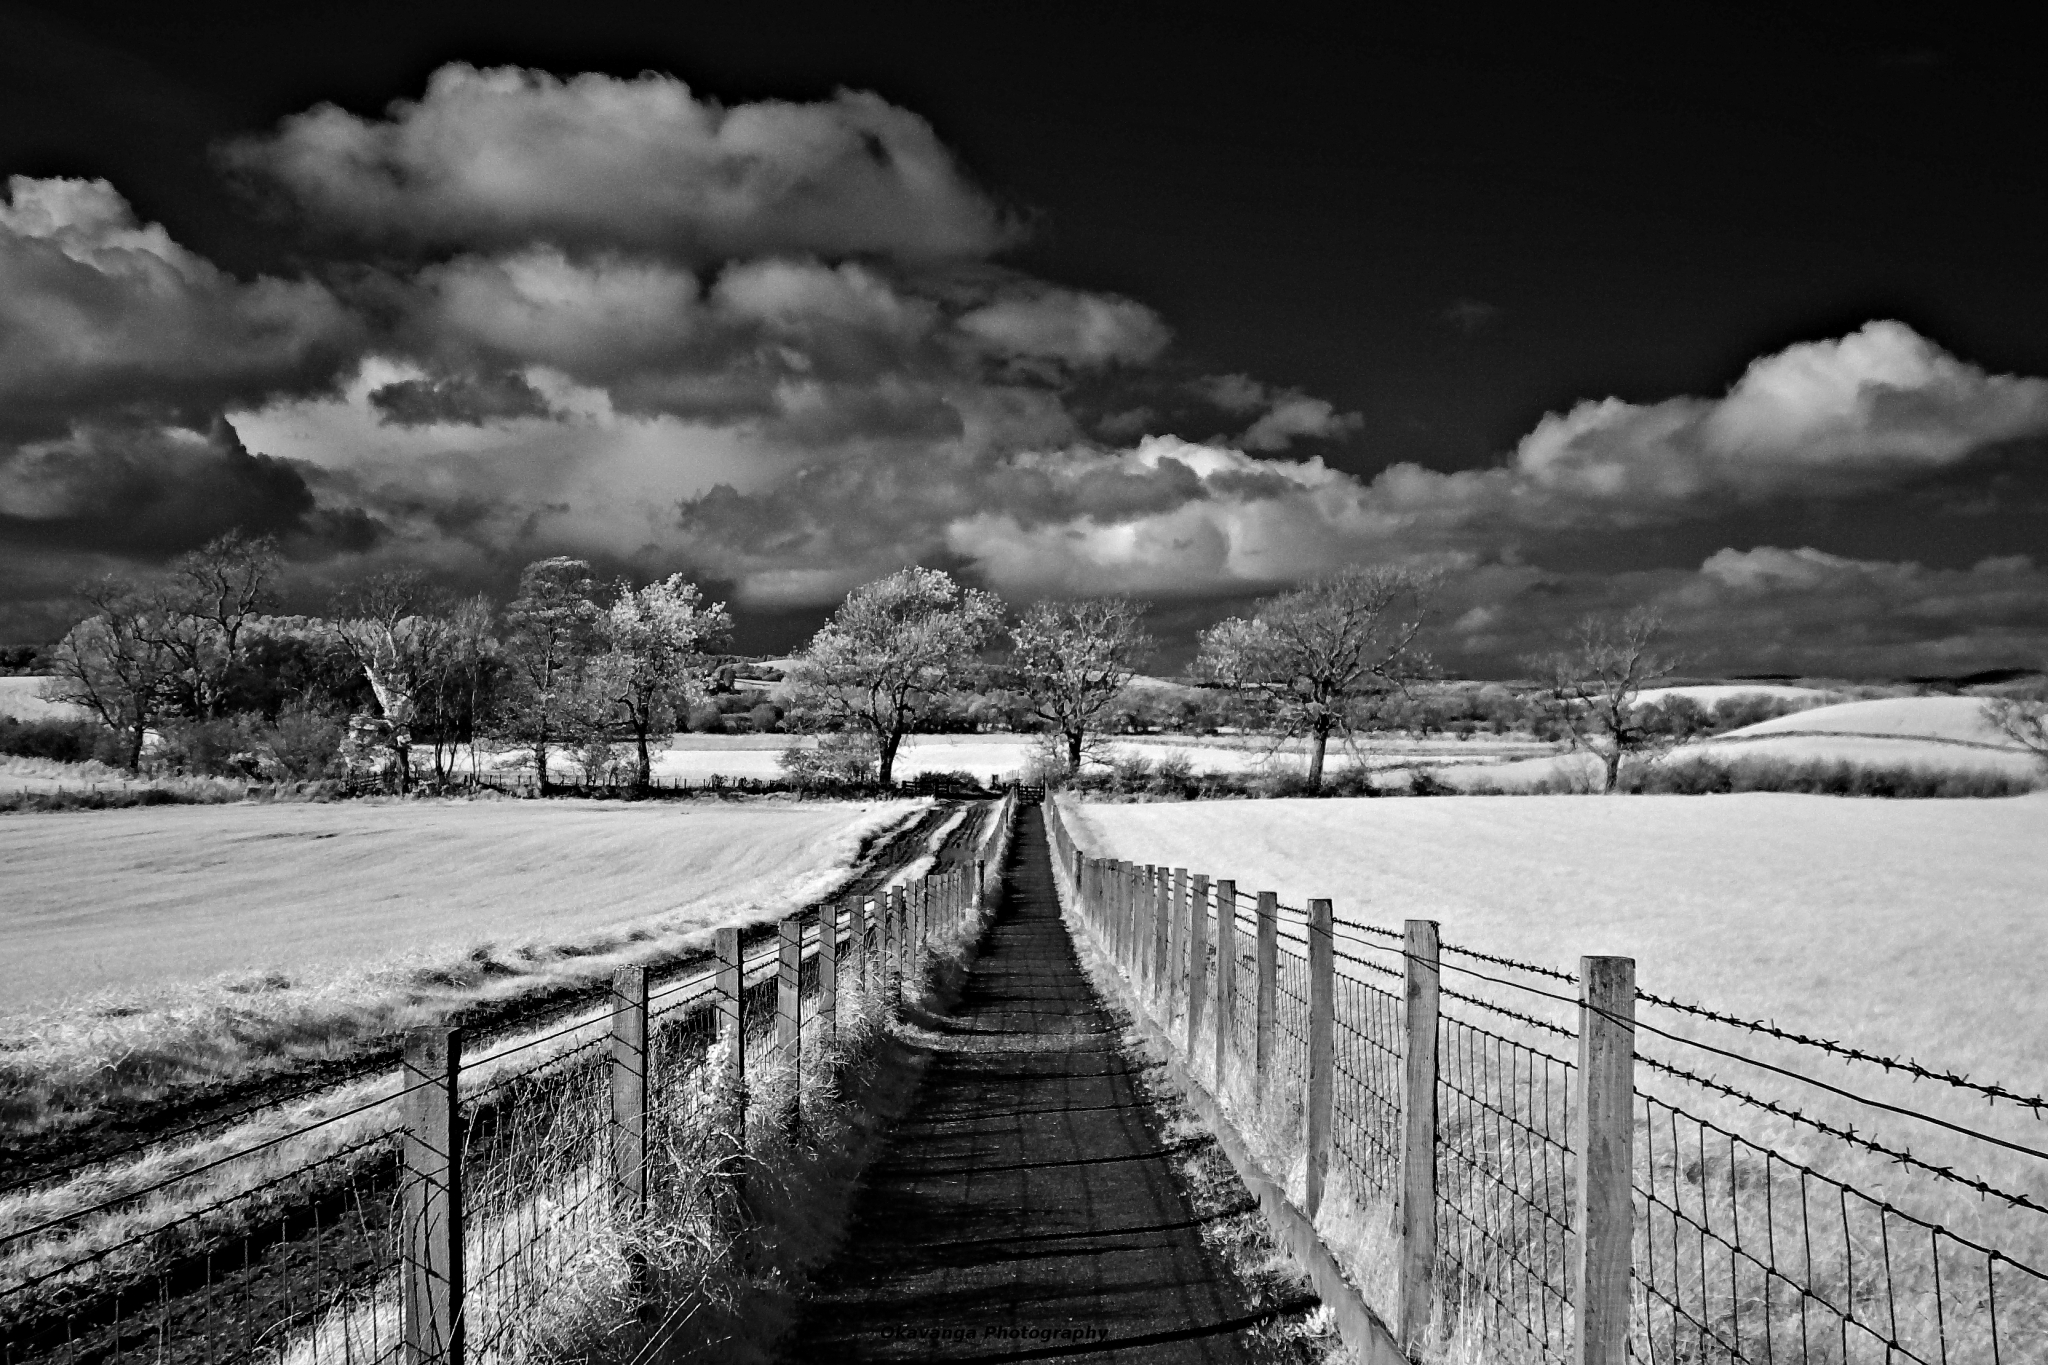 Threave IR 1 by Okavanga